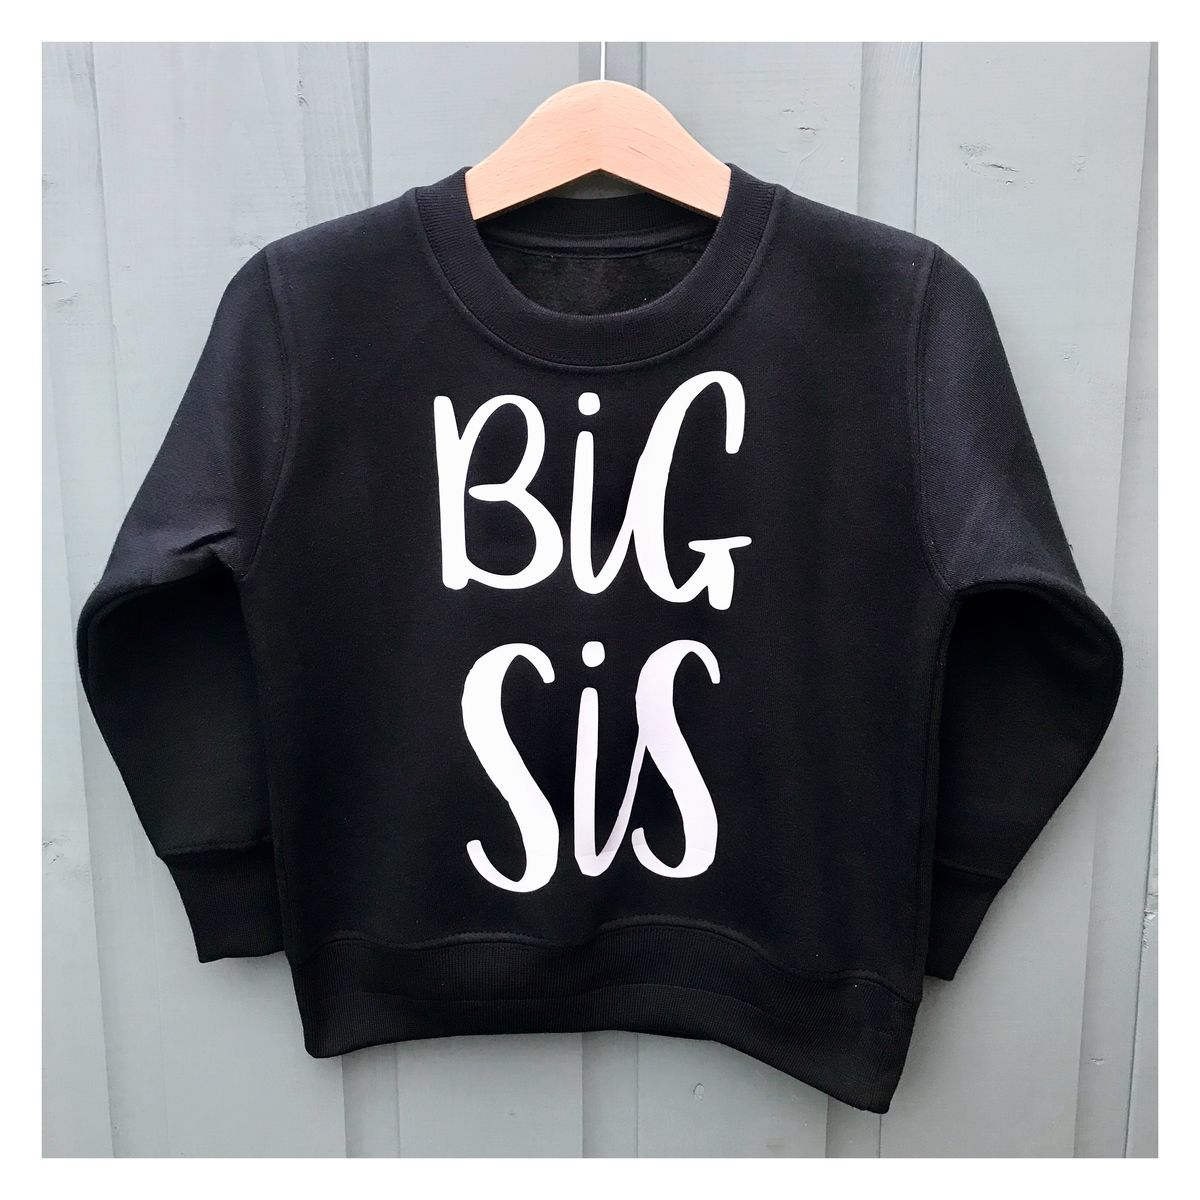 Big Bro, Lil Bro, Big Sis, Lil Sis Sweatshirts (various sizes) - product images  of